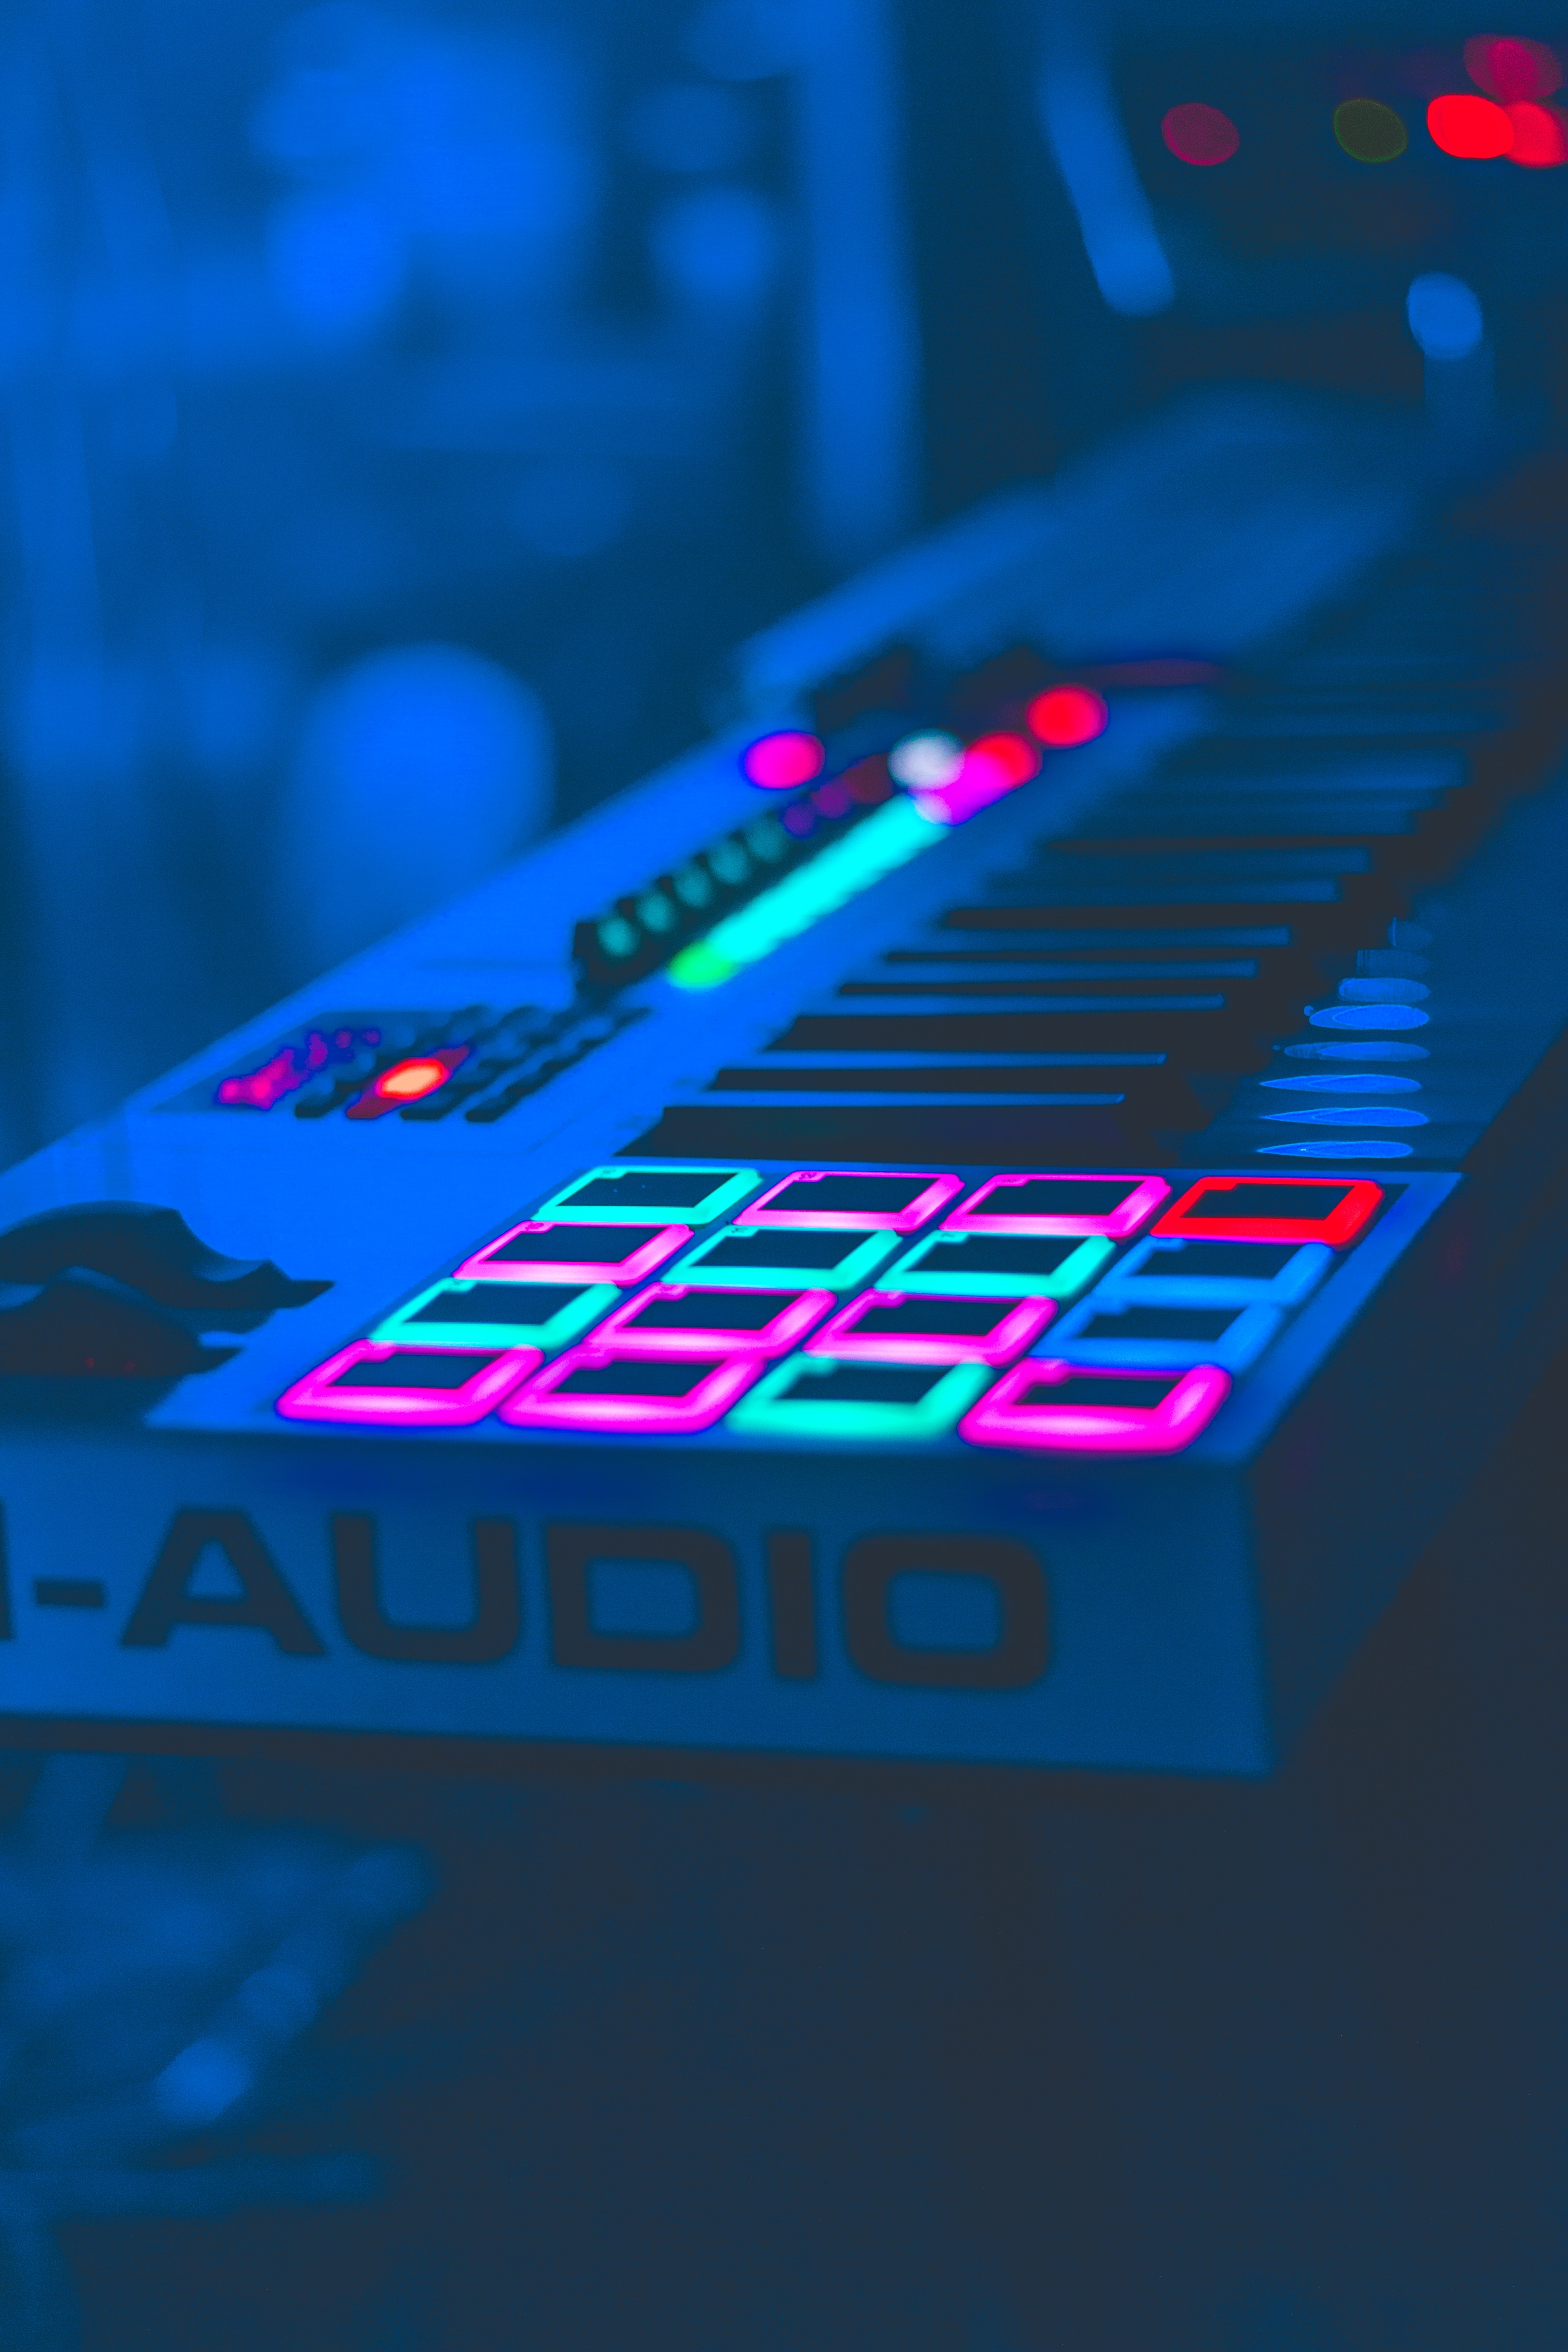 155034 download wallpaper Music, Neon, Keys, Equipment, Apparatus, Audio screensavers and pictures for free